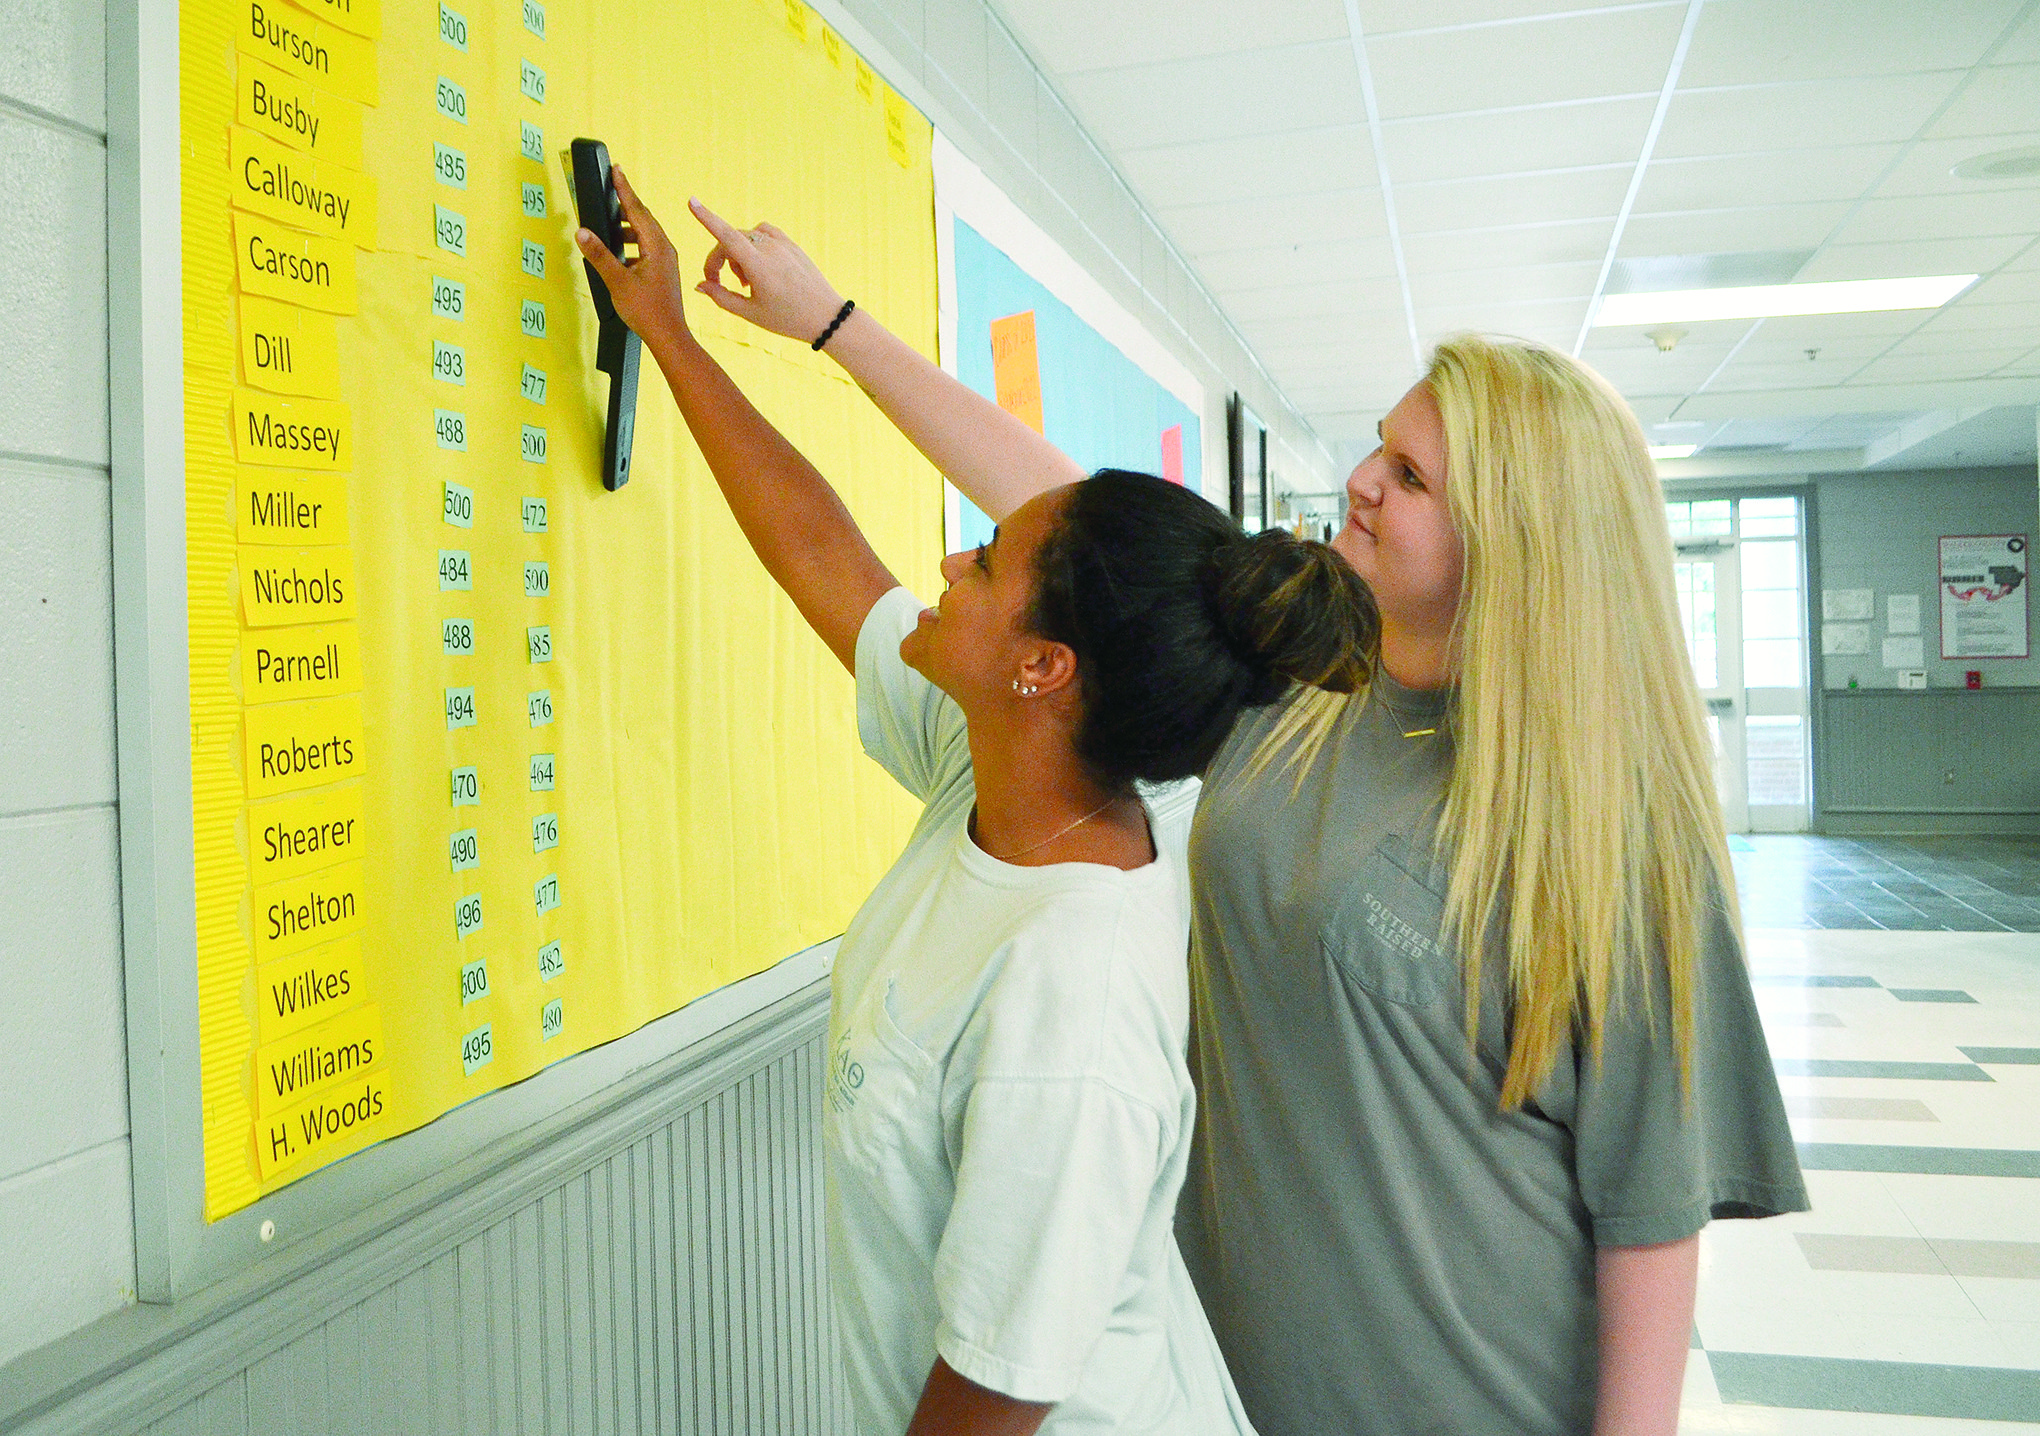 From left to right, Oakman High School seniors Samantha Homan and Lani Herron work on a board that is used to track student attendance.